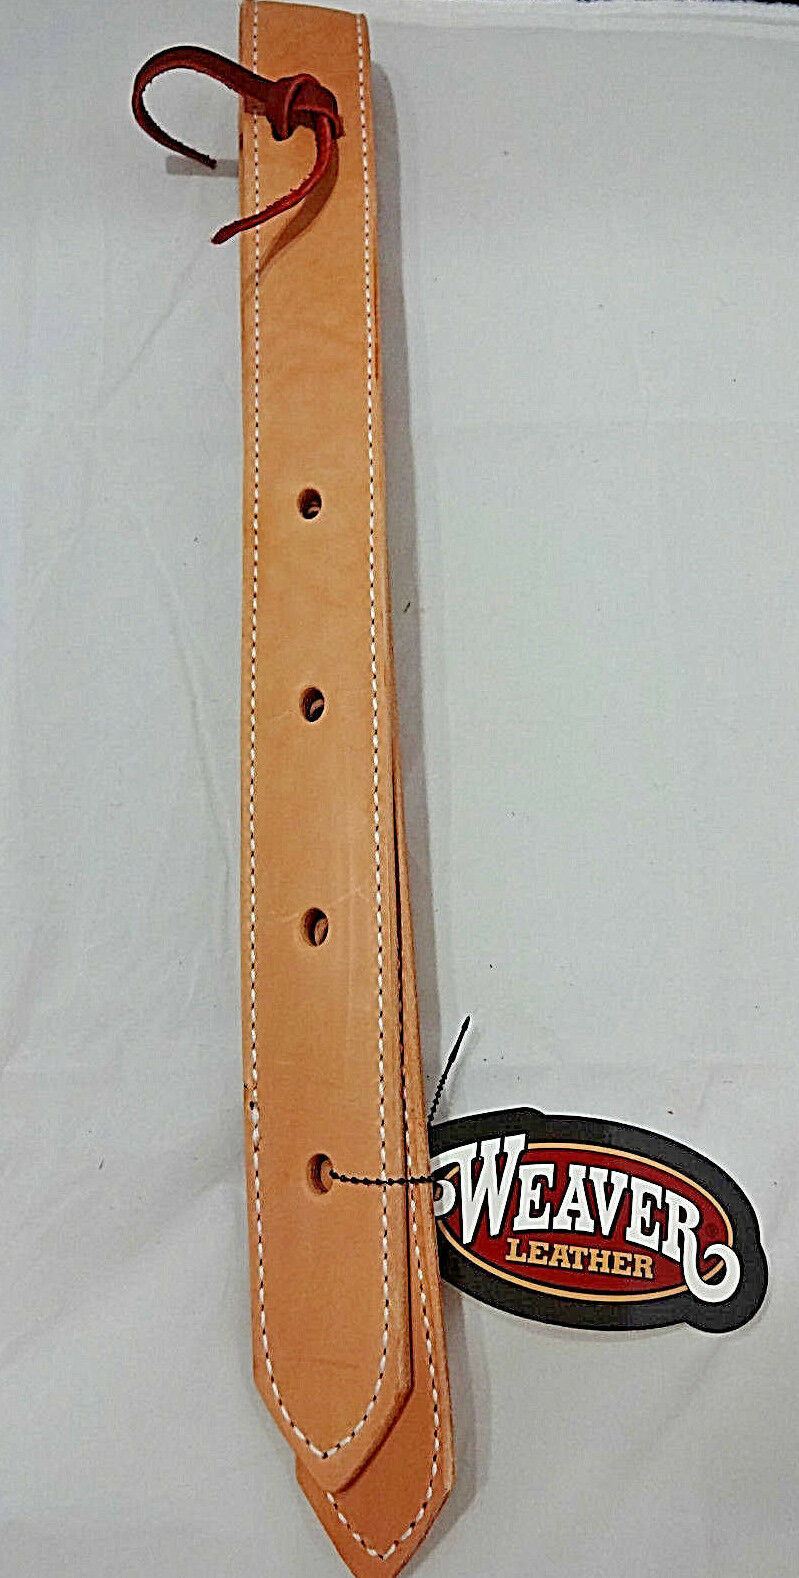 New Weaver Leather Heavy Duty Western Saddle Off Billet  Double Stitched 1 3 4   clearance up to 70%